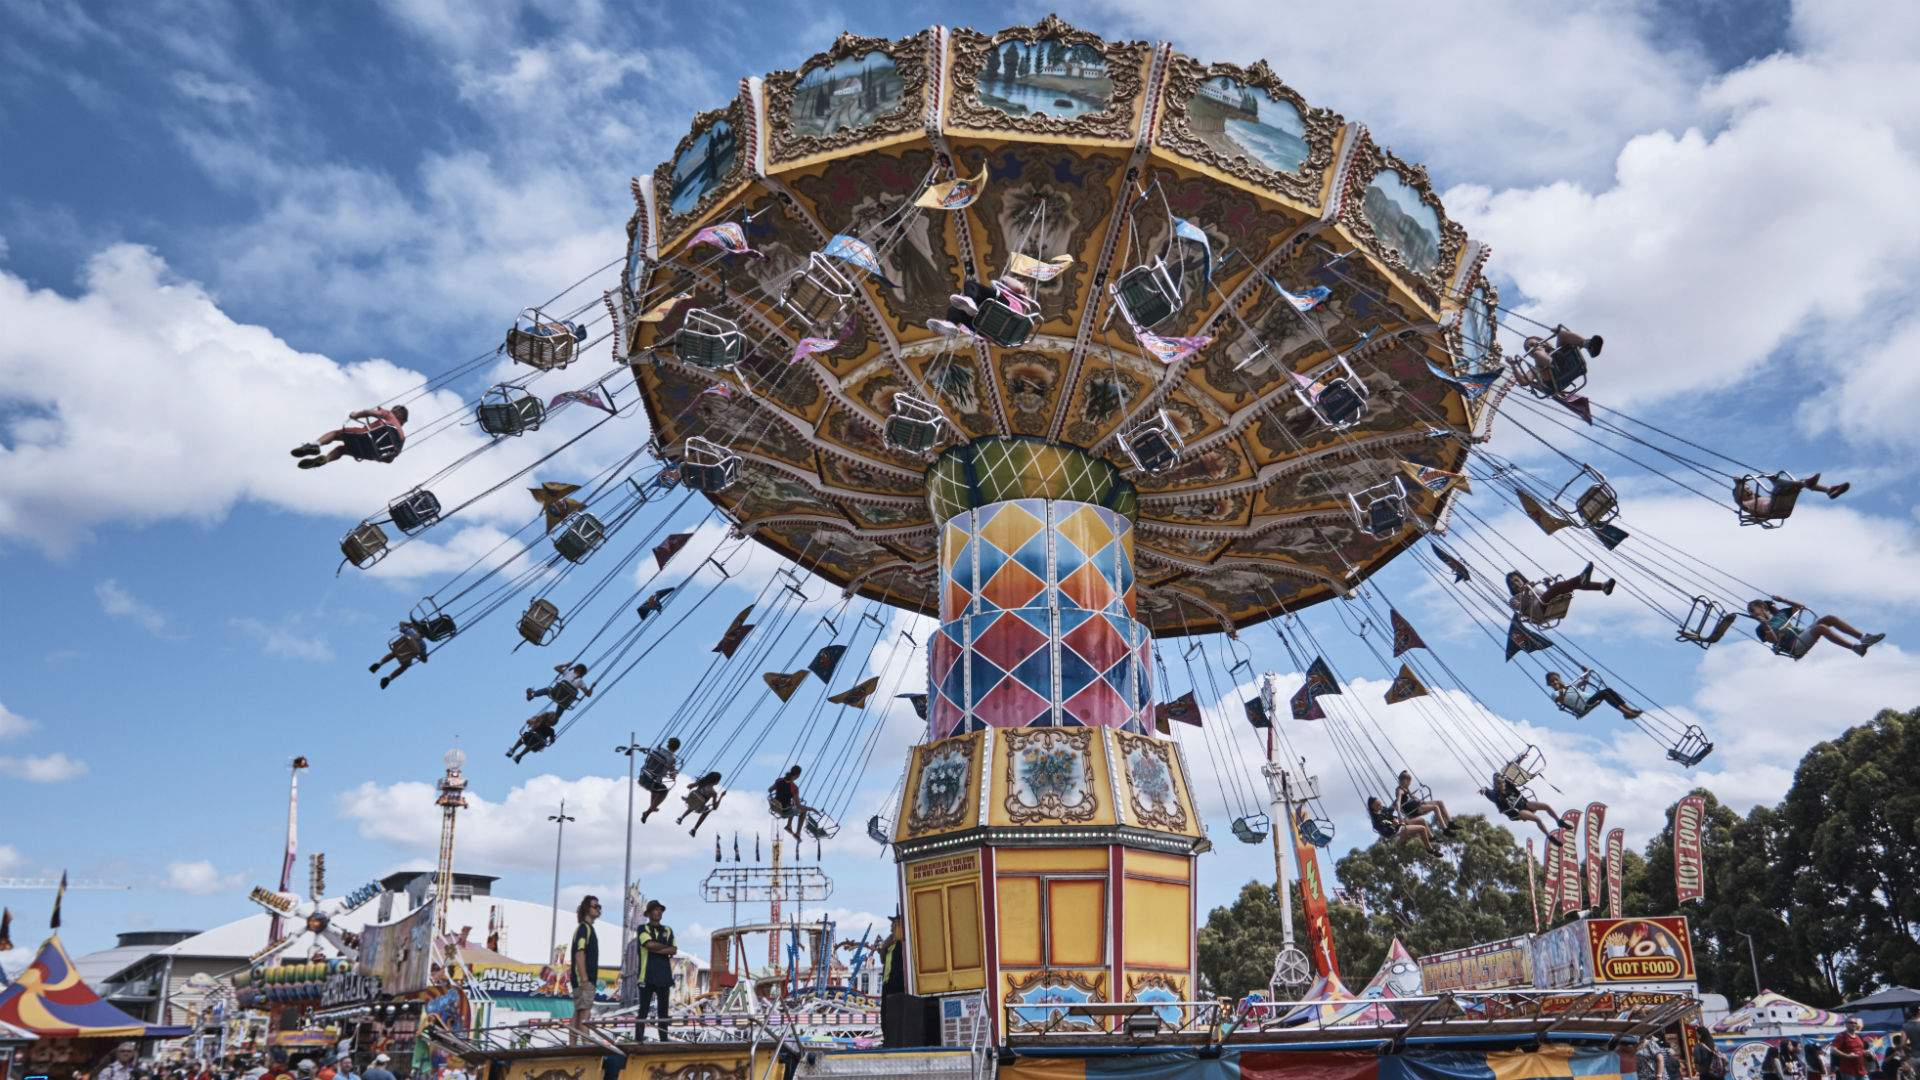 The Sydney Royal Easter Show Has Been Cancelled for 2020 Due to Australia's Mass Gatherings Ban